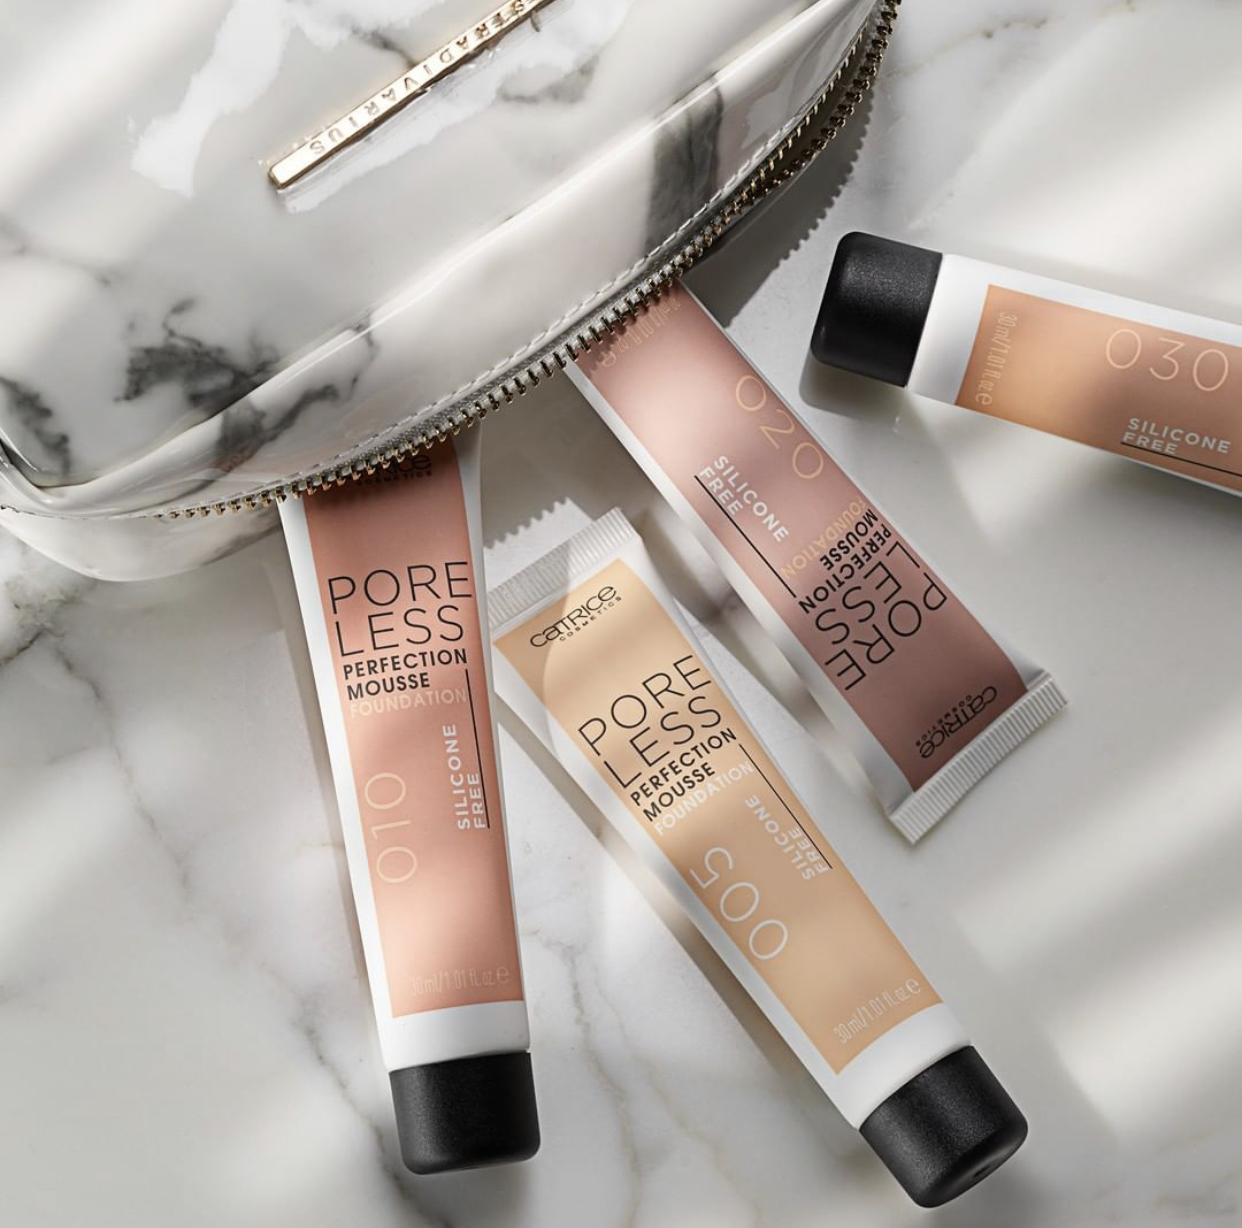 Catrice Poreless Perfection Mousse Foundation Launch 2020